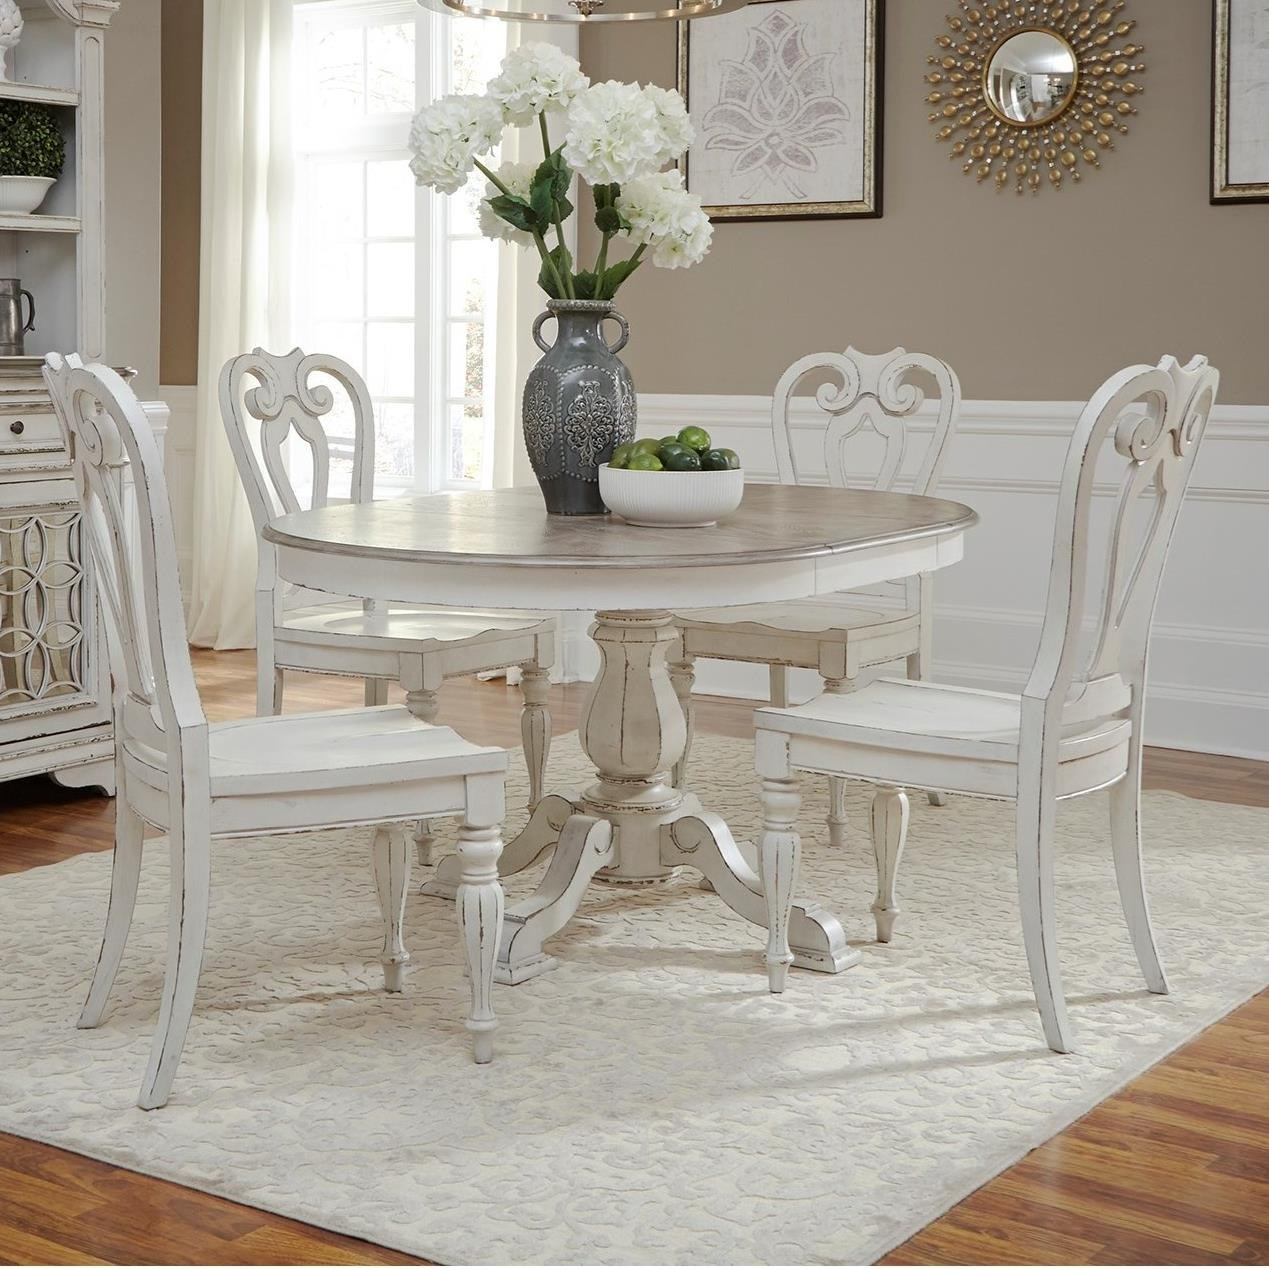 Cheap Dining Room Table And Chairs Magnolia Manor 5 Piece Table Set With Splat Back Chairs By Liberty Furniture At Great American Home Store